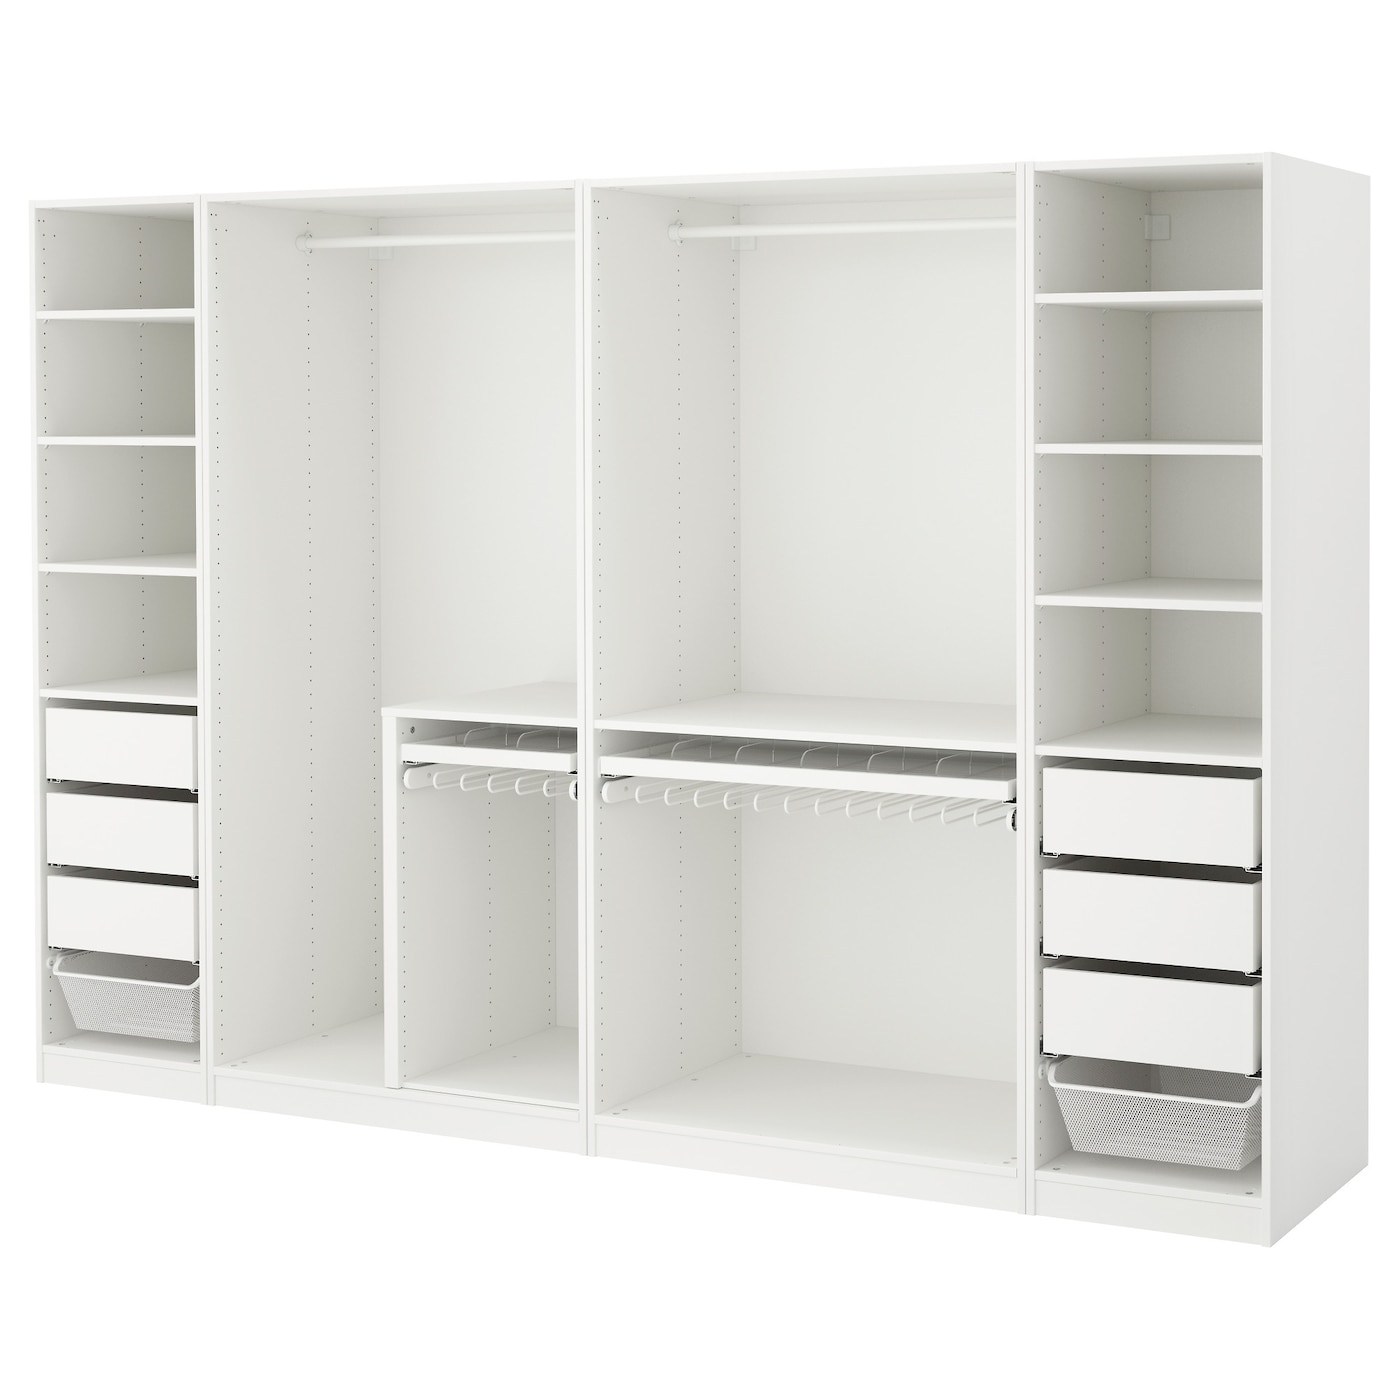 pax wardrobe white 300 x 58 x 201 cm ikea. Black Bedroom Furniture Sets. Home Design Ideas